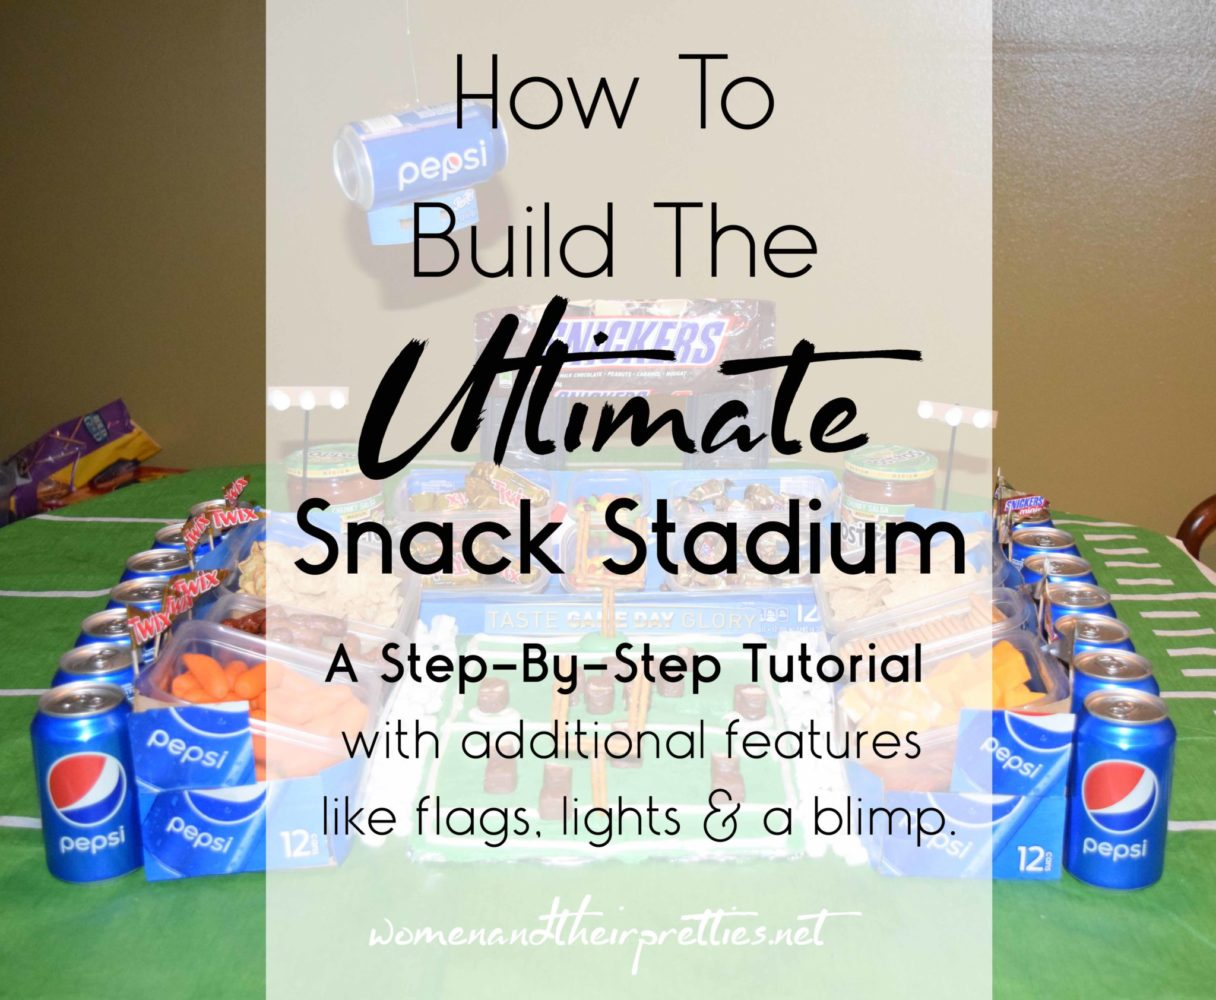 How To Build The Ultimate Snack Stadium a Step By Step Tutorial